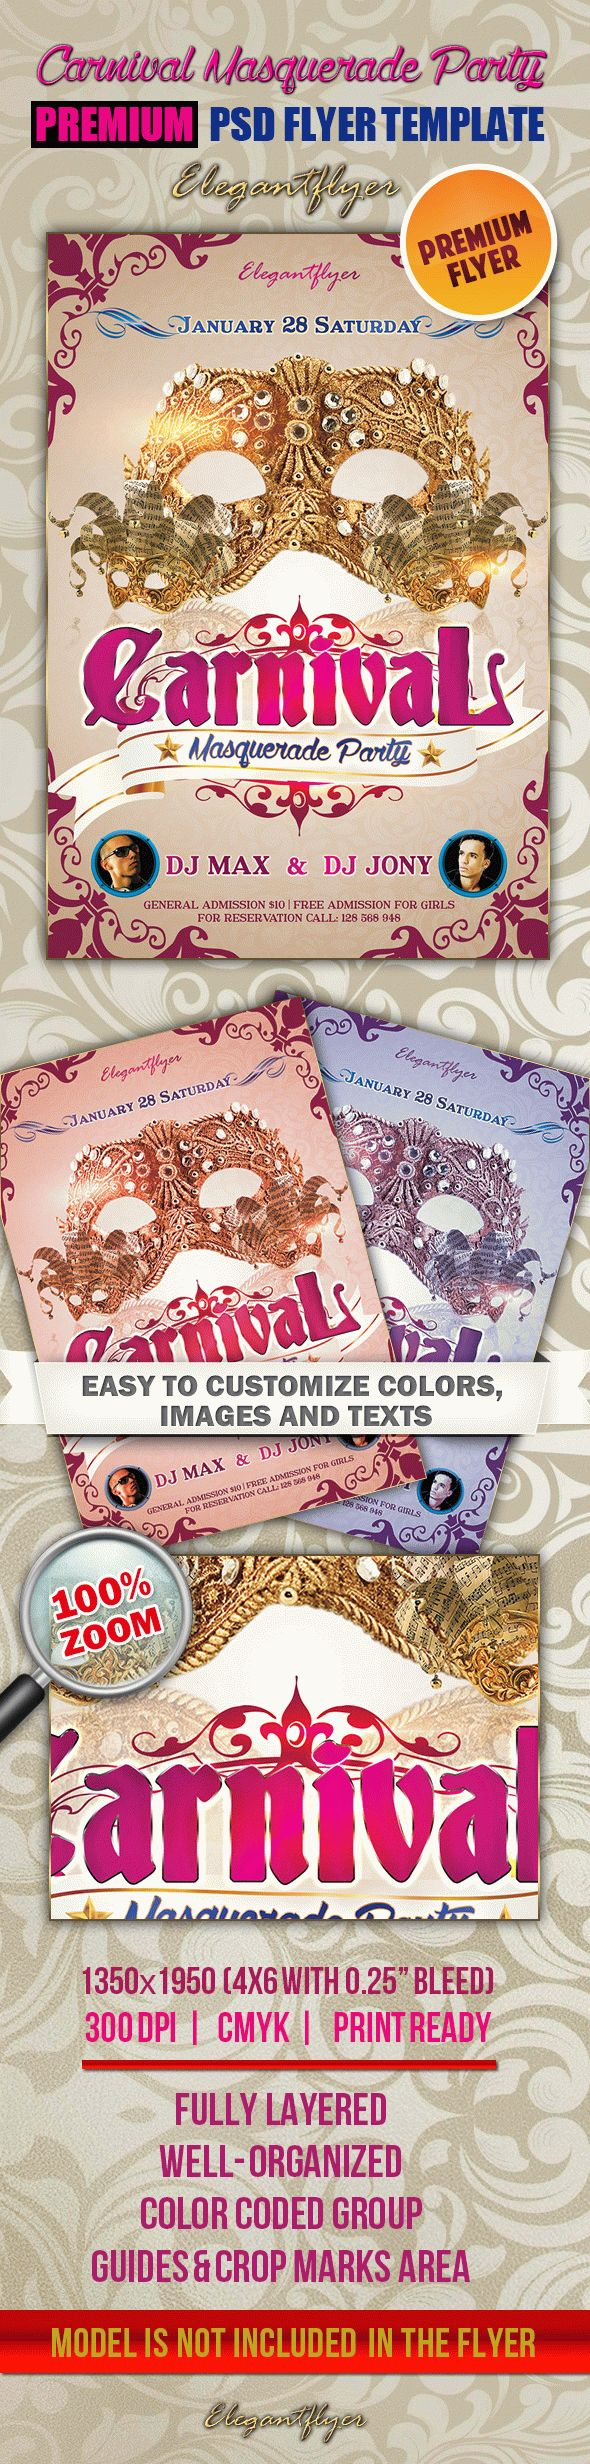 Carnival Masquerade Party – Premium Club flyer PSD Template